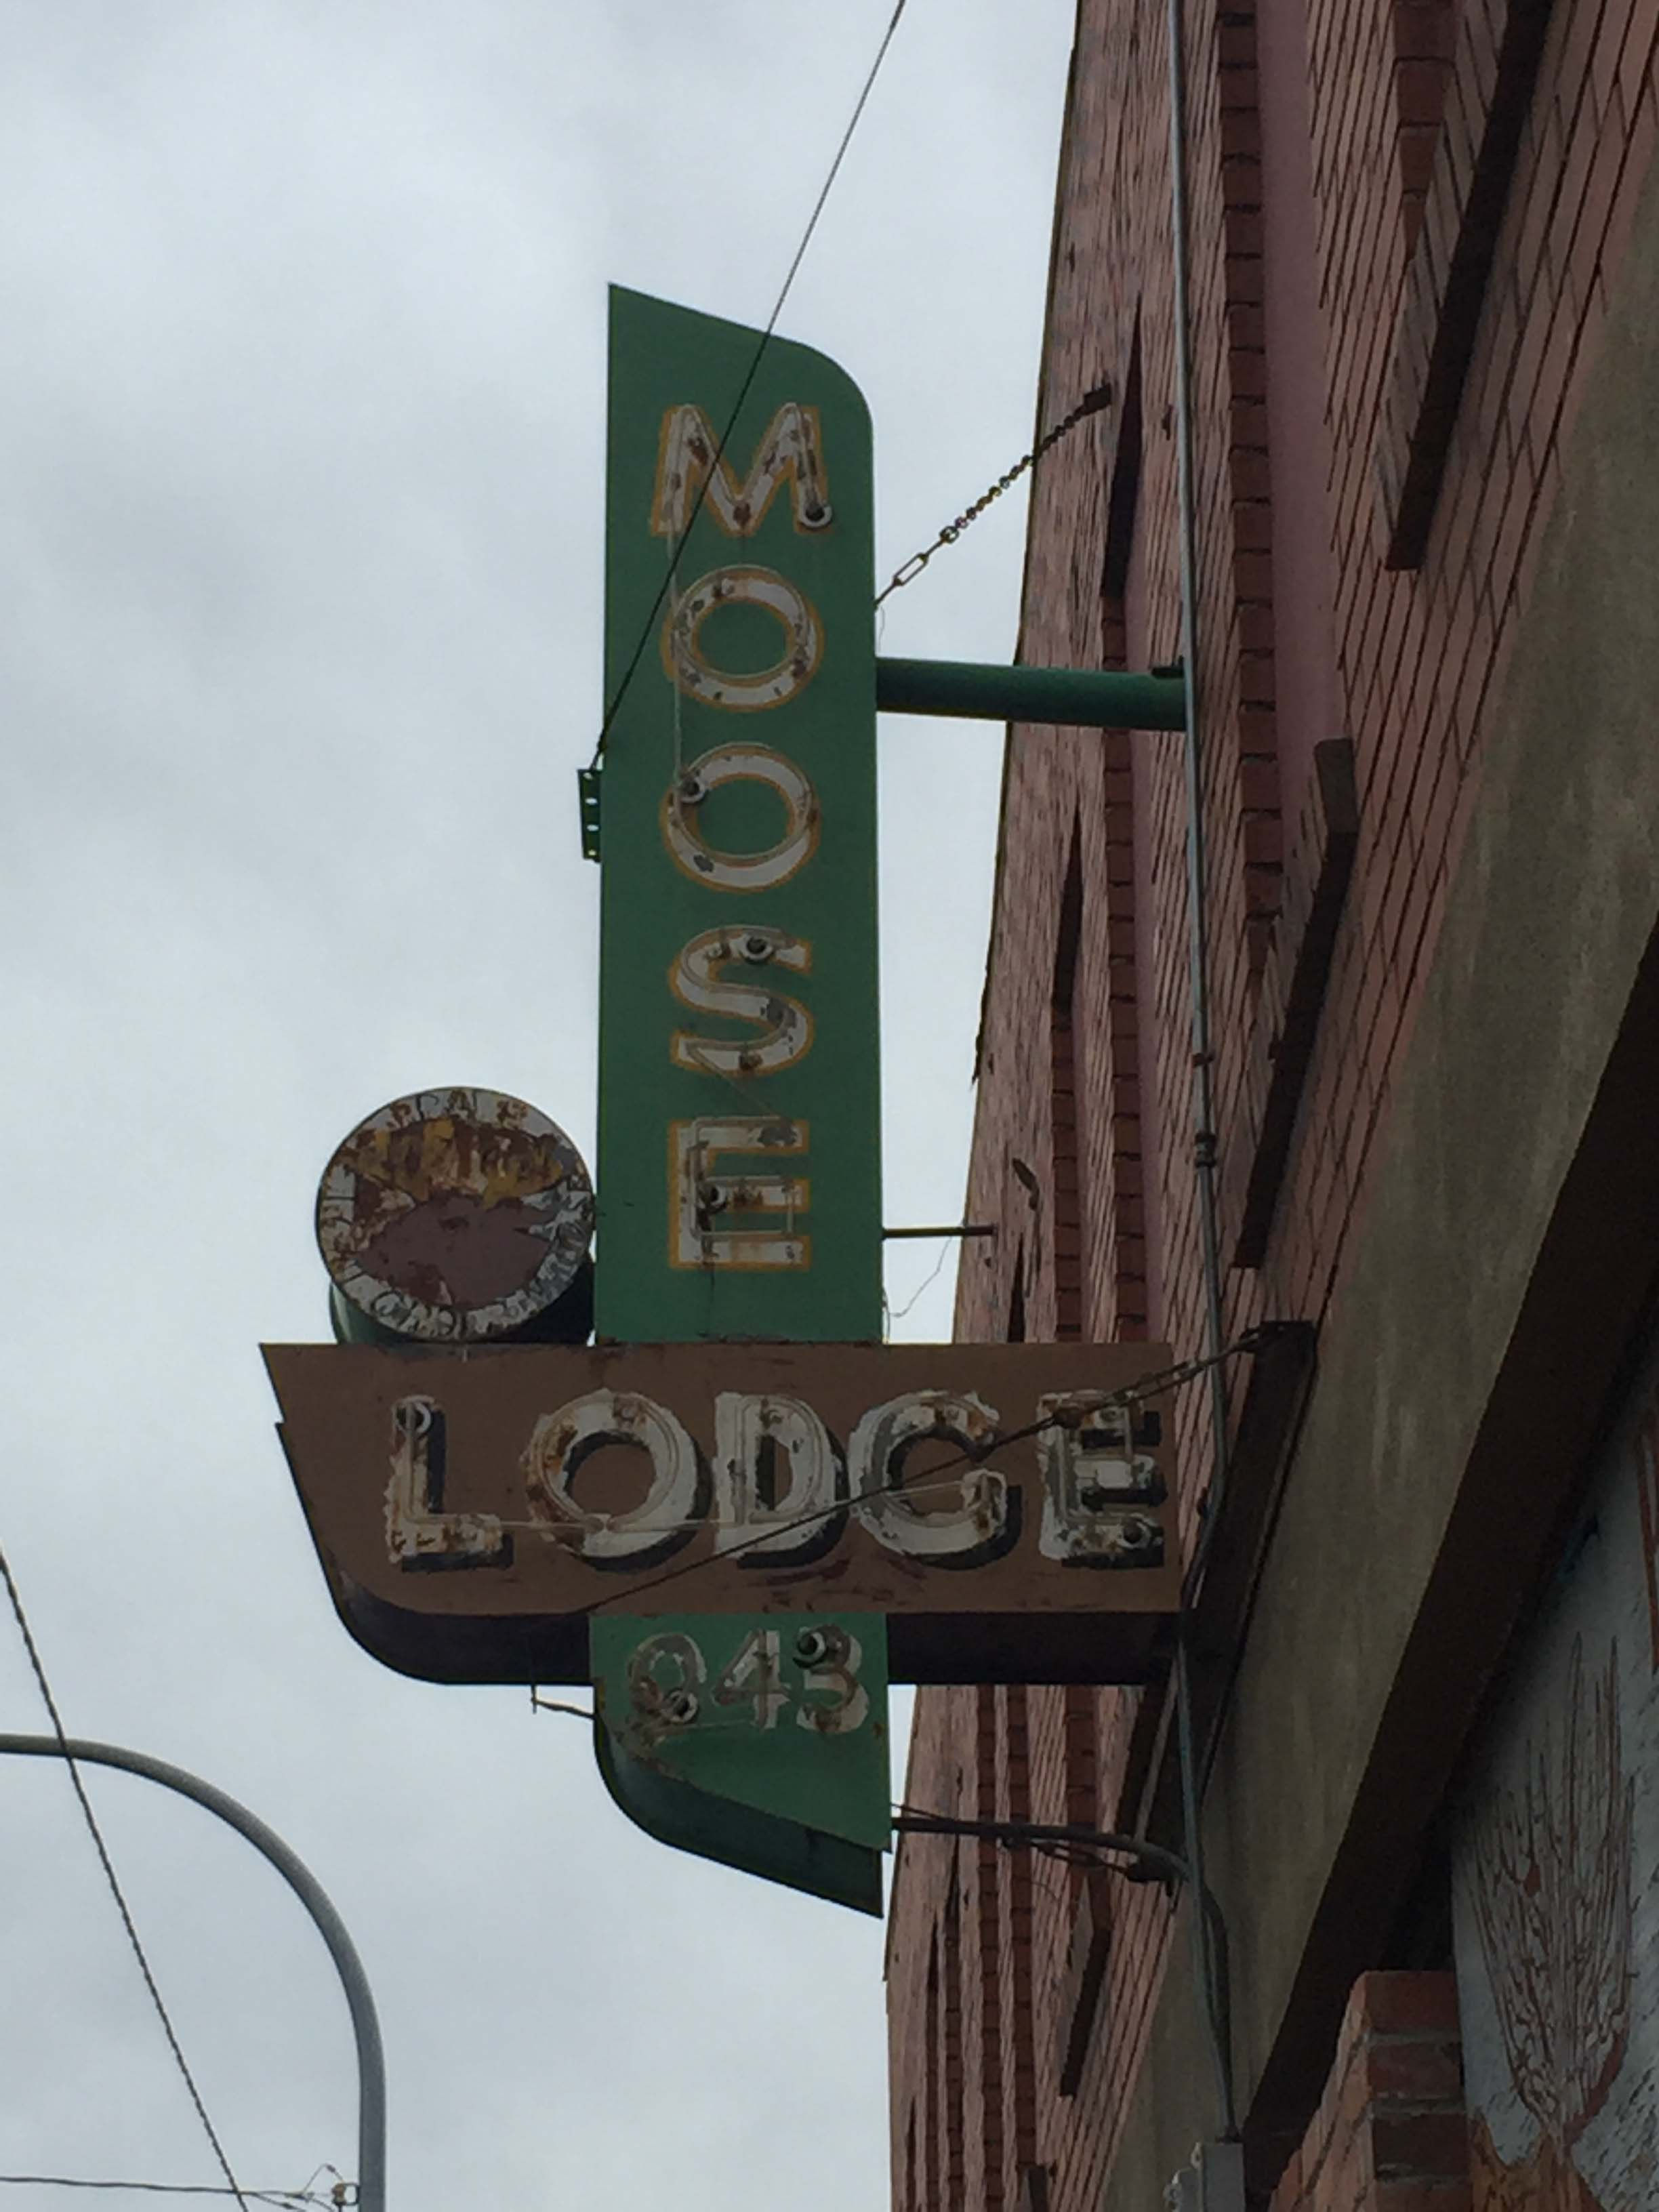 Moose Lodge signage on the building, taken February 2018.